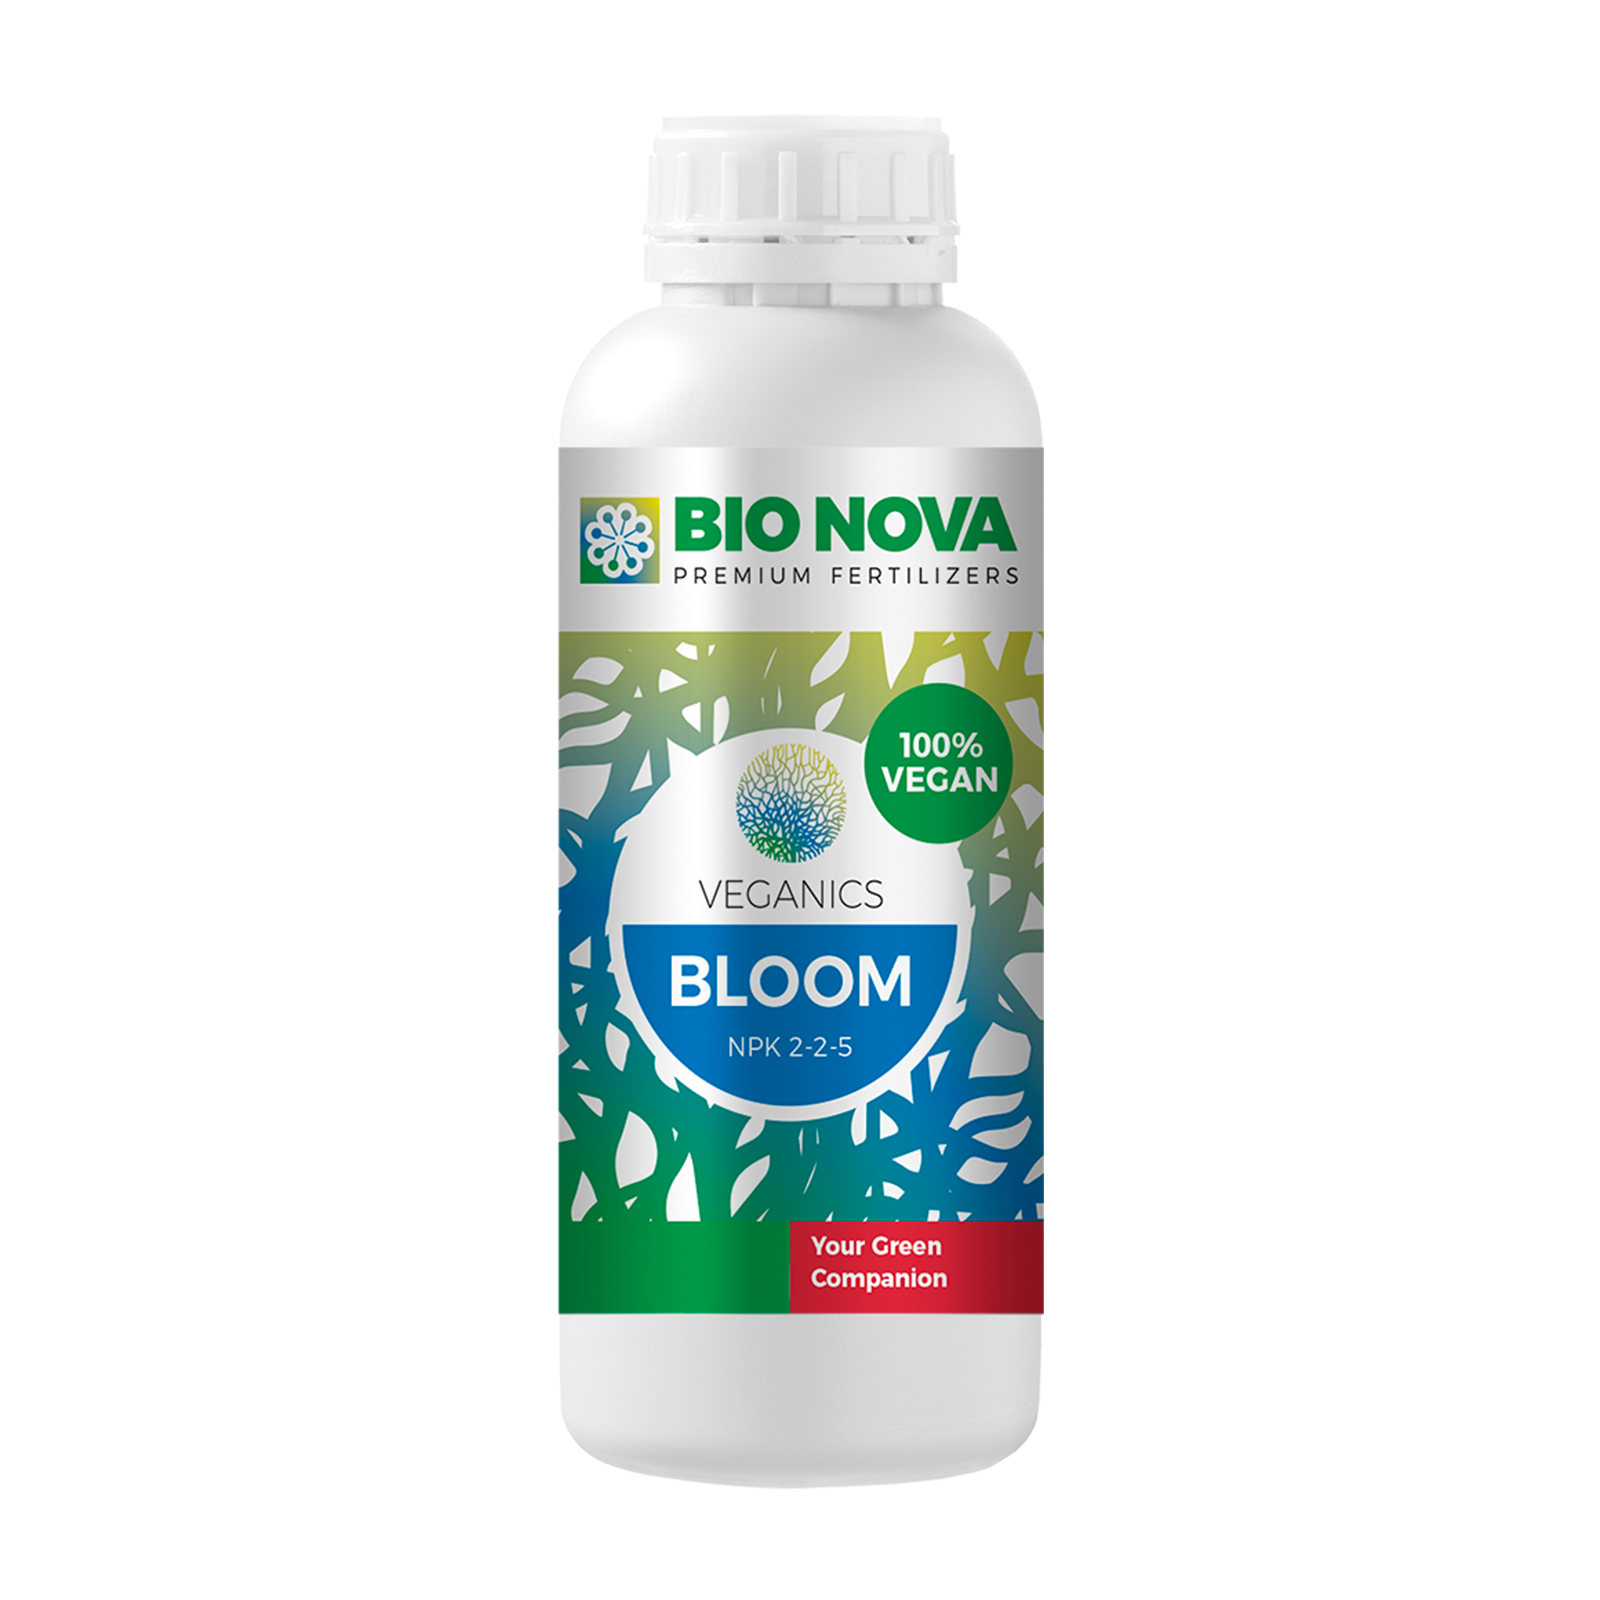 Bionova Veganic Bloom